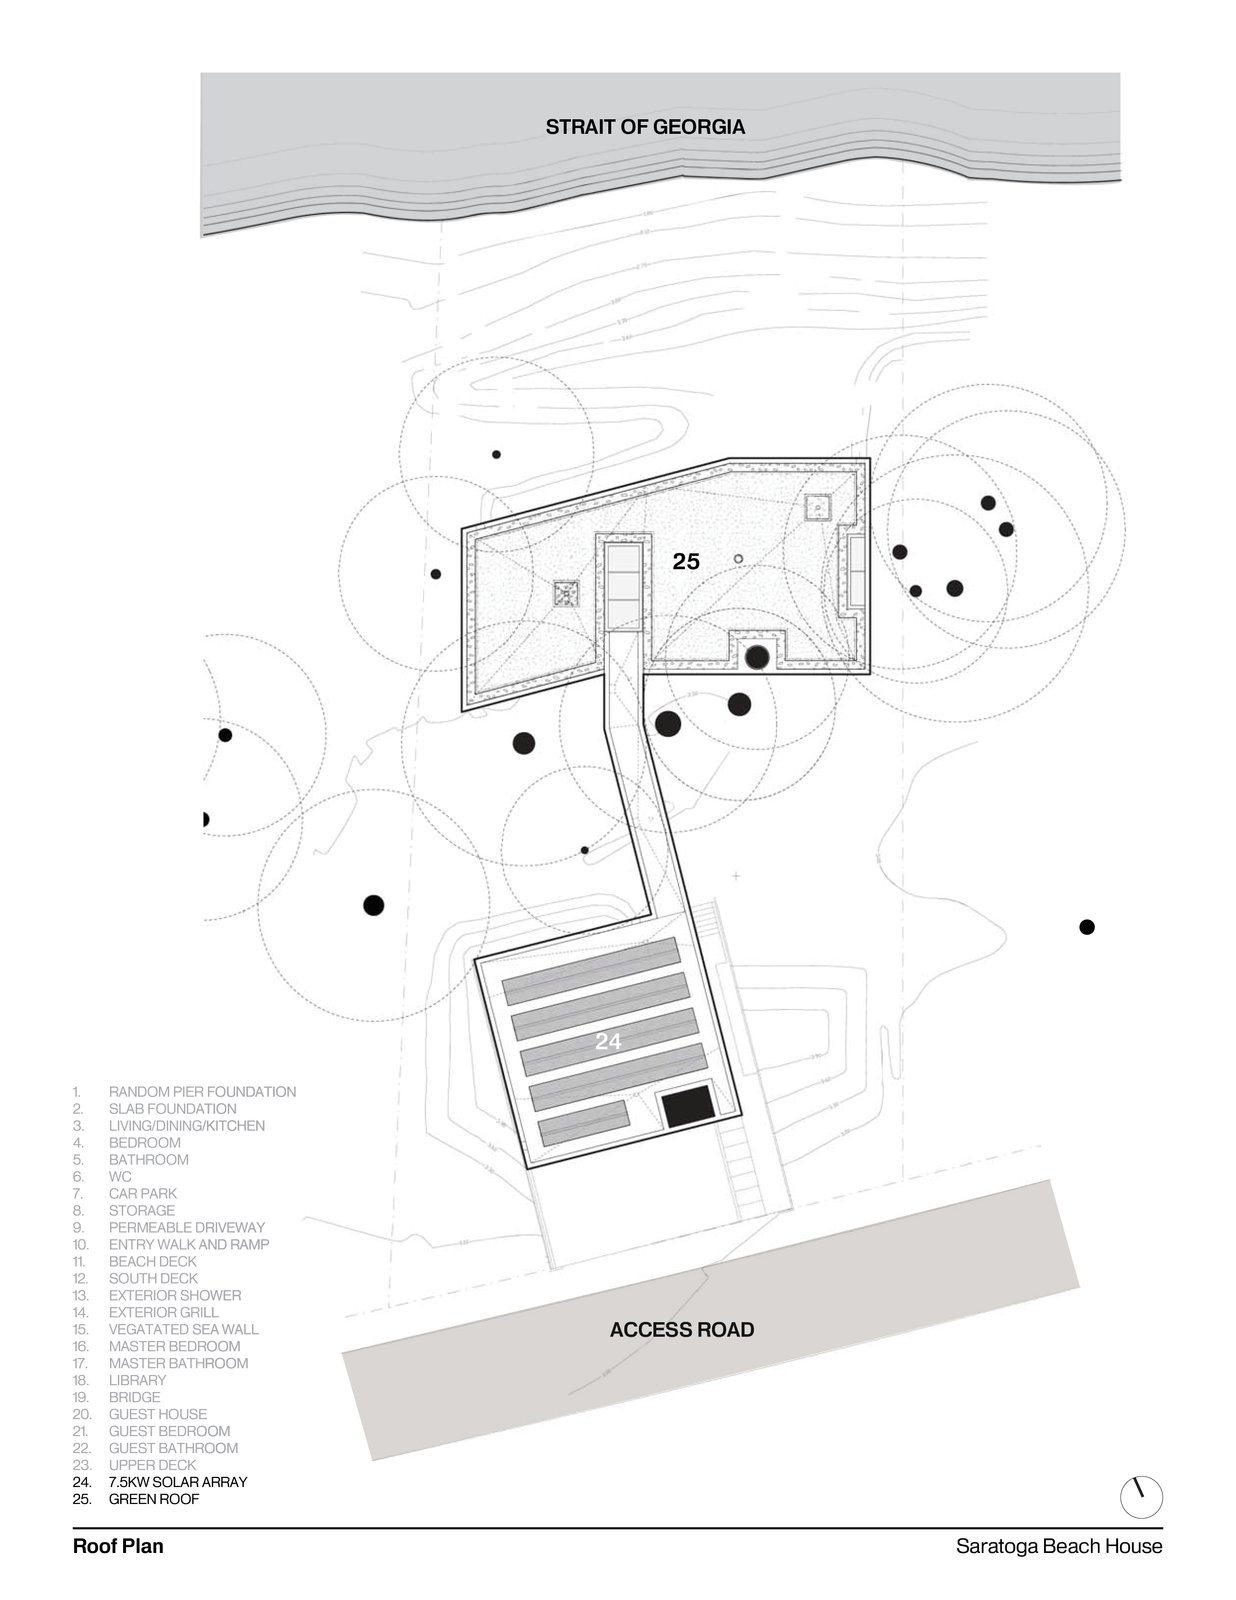 Roof Plan   #intersticearchitects #interstice #floorplan #plan #residentialarchitecture #residential   TreeHugger